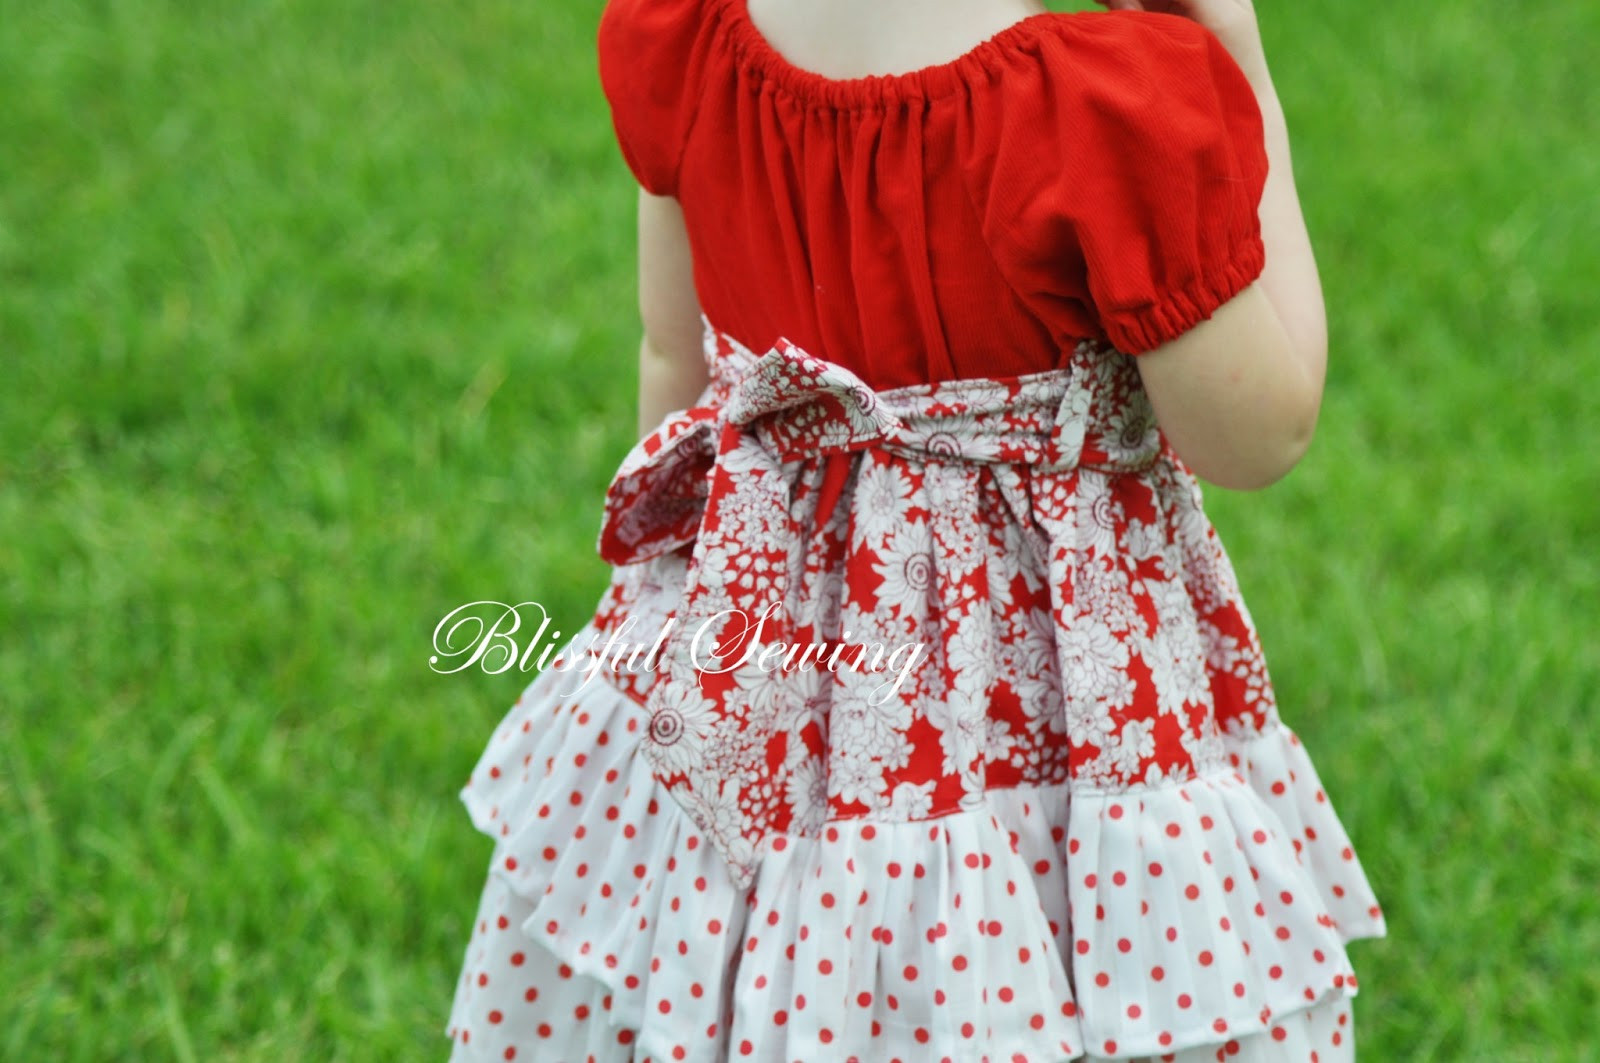 Dress Patterns for Girls Elegant Sewing Patterns for Girls Dresses and Skirts Ruffled Of Unique 49 Pics Dress Patterns for Girls